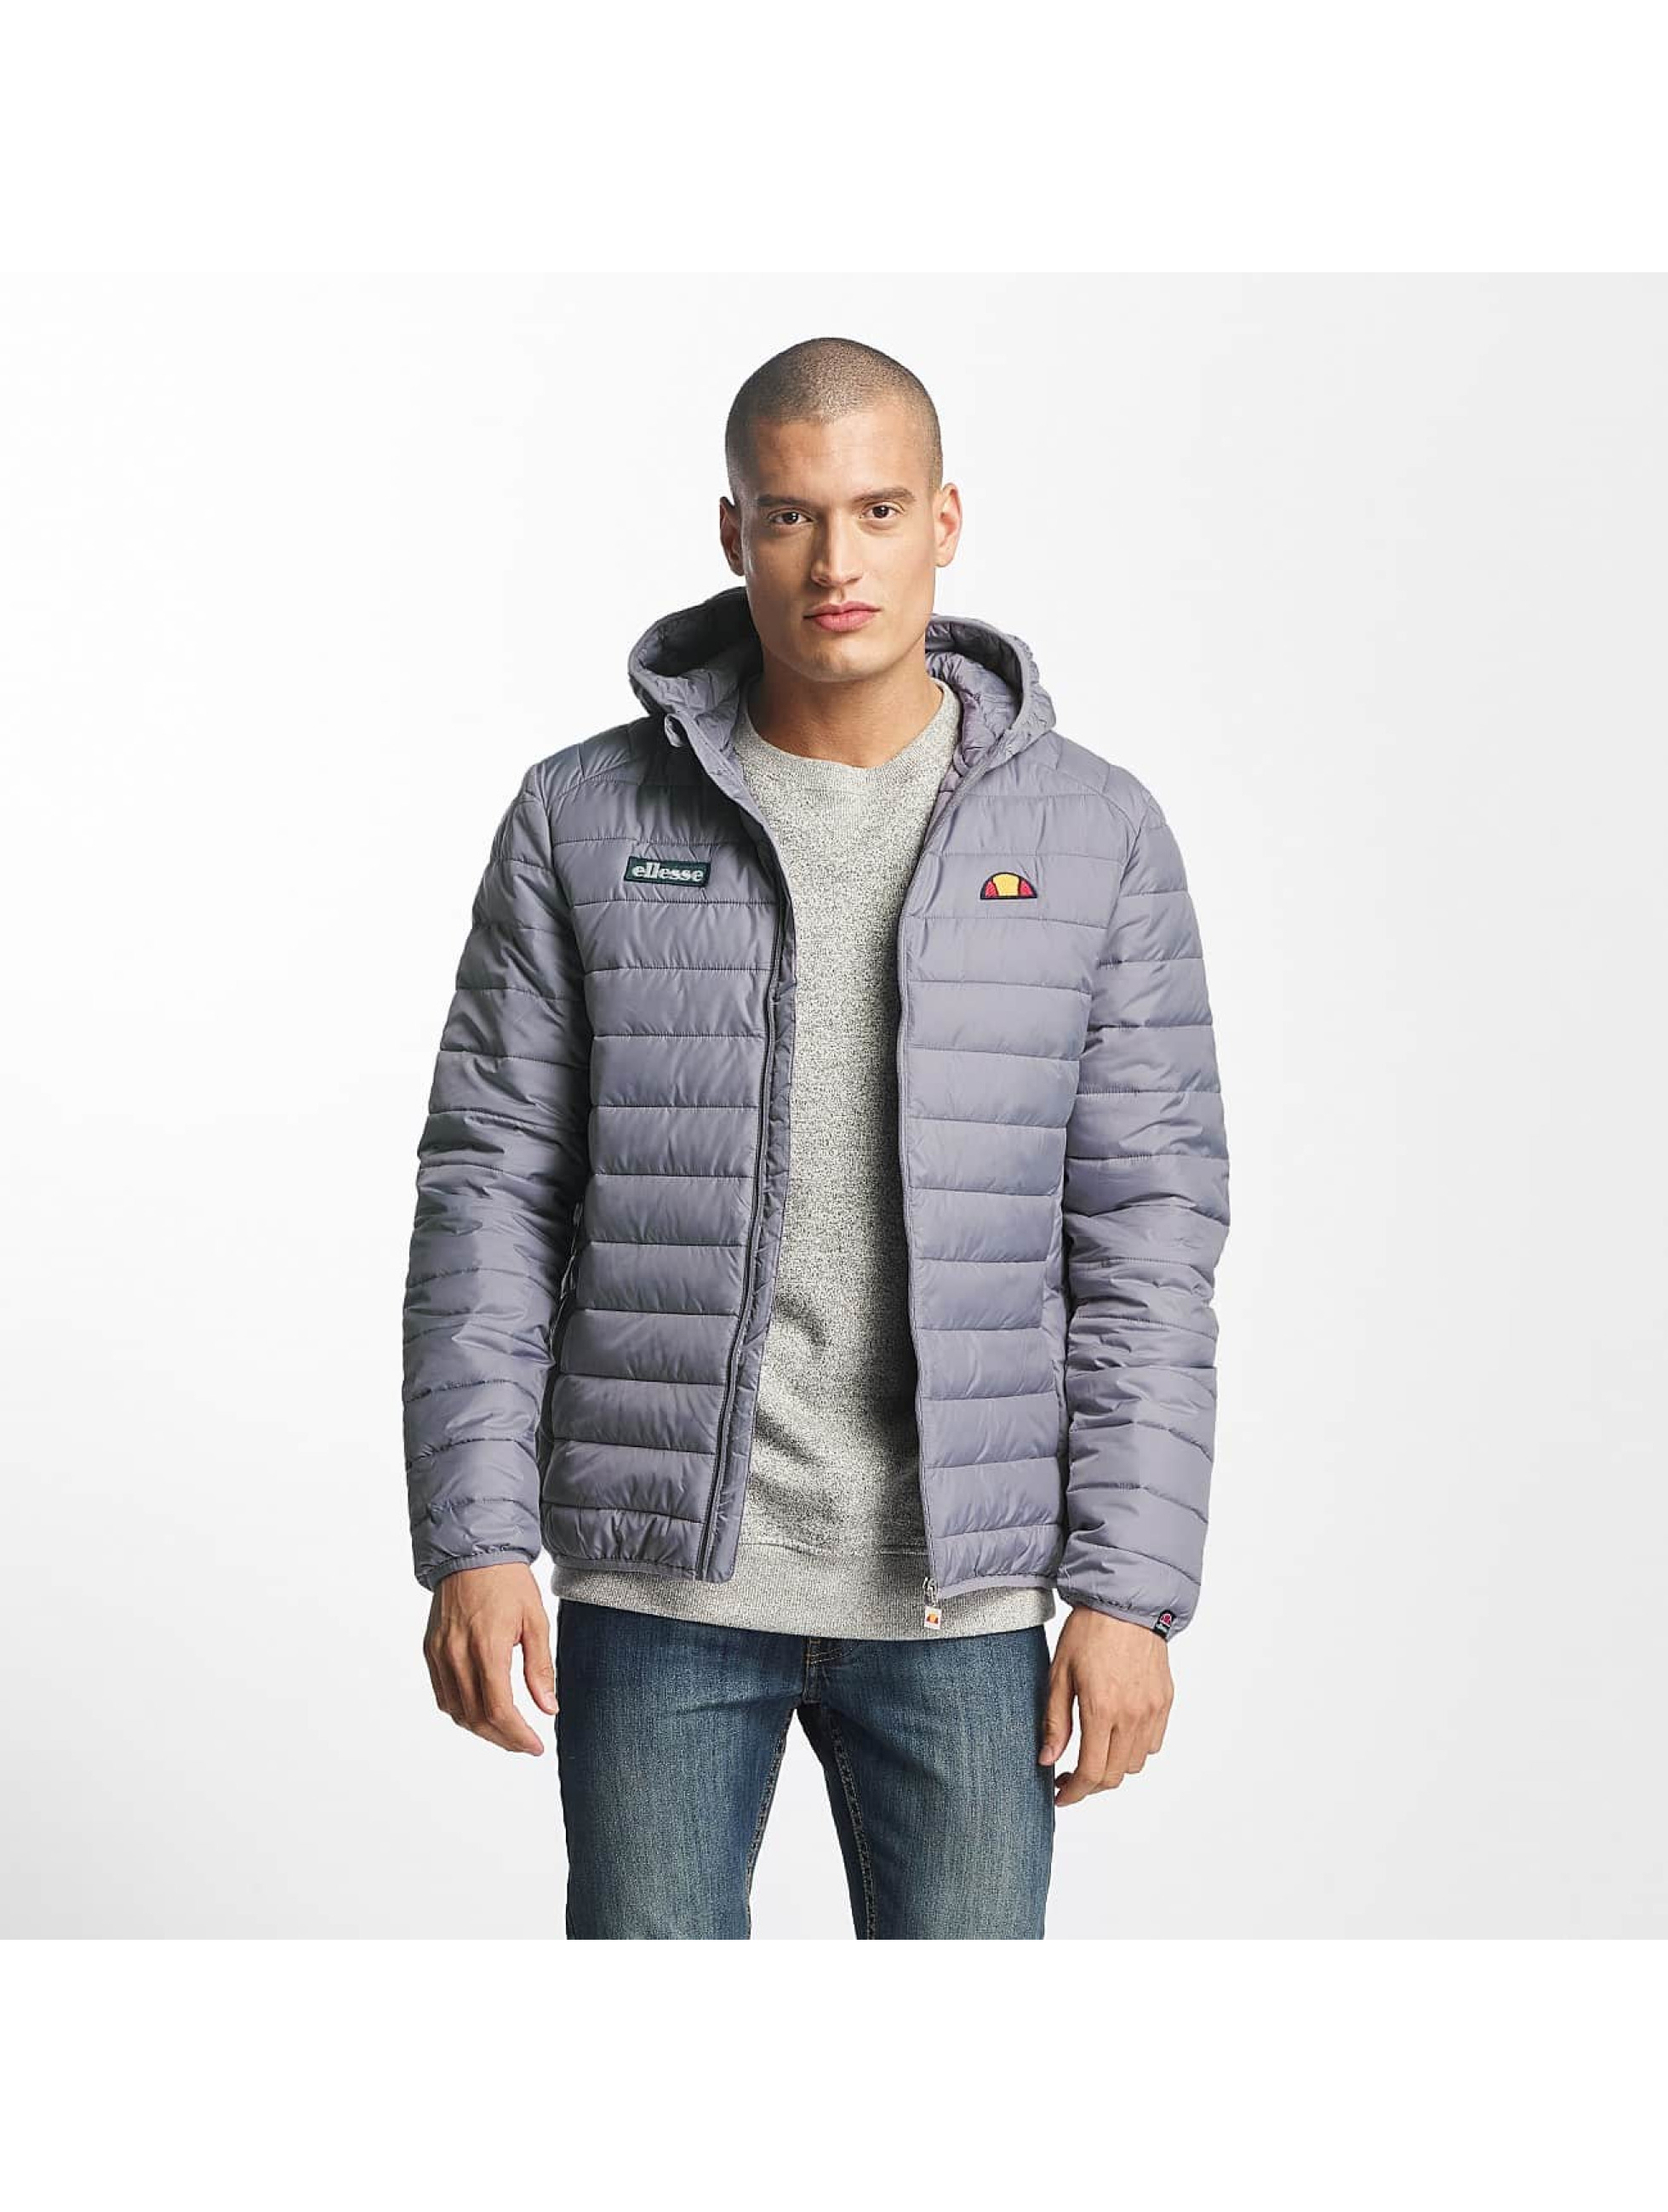 Ellesse Lightweight Jacket Lombardy Padded gray